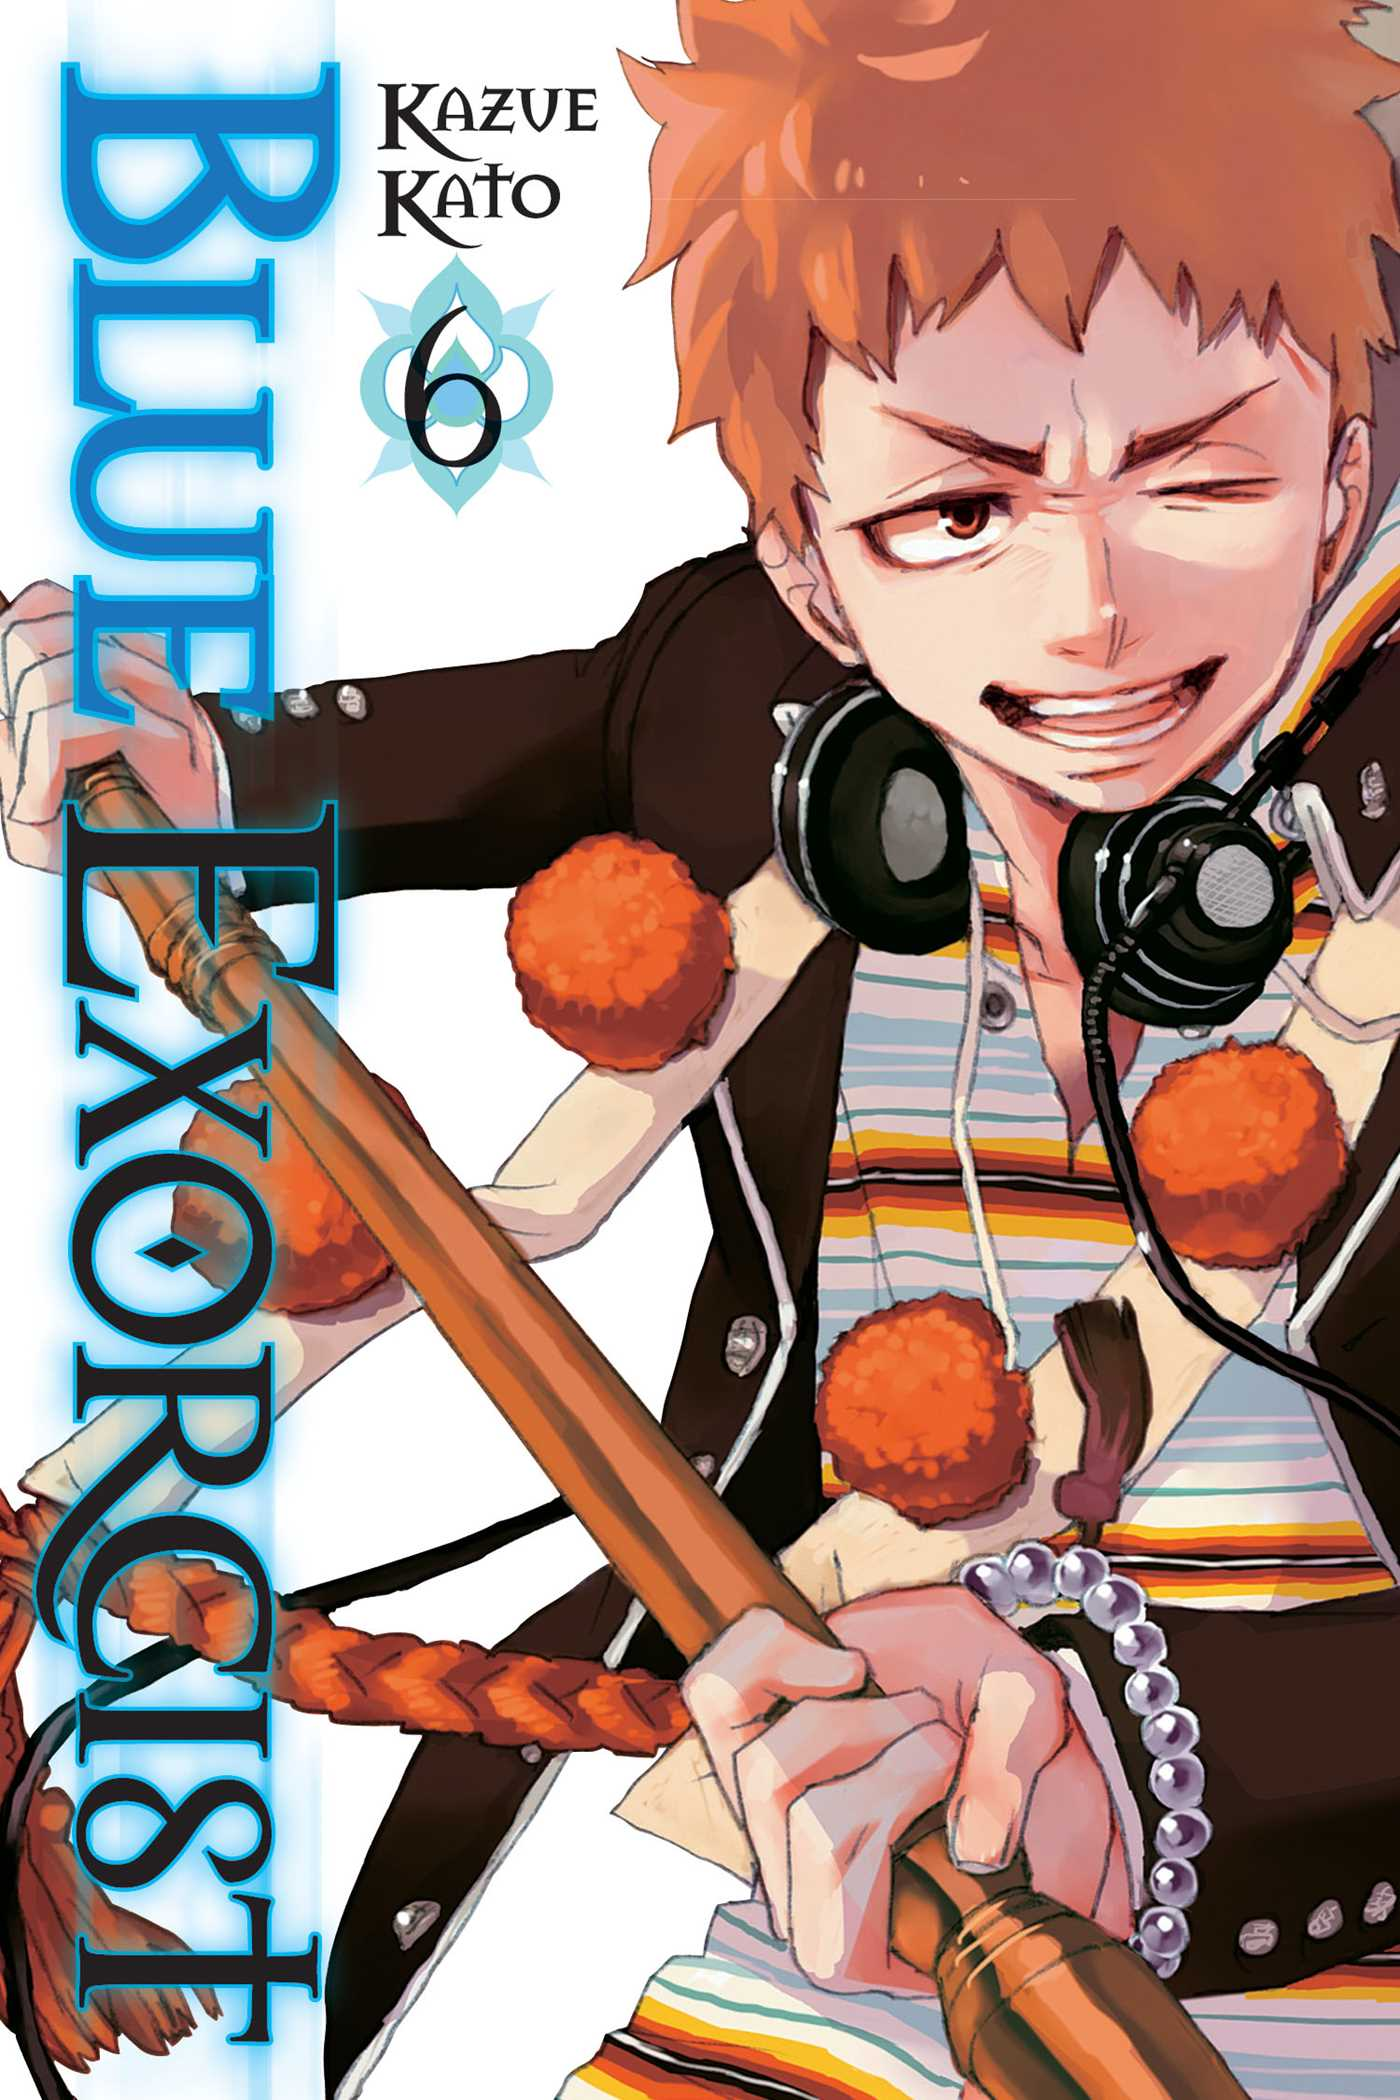 Blue Exorcist Vol 6 Book By Kazue Kato Official Publisher Page Simon Schuster